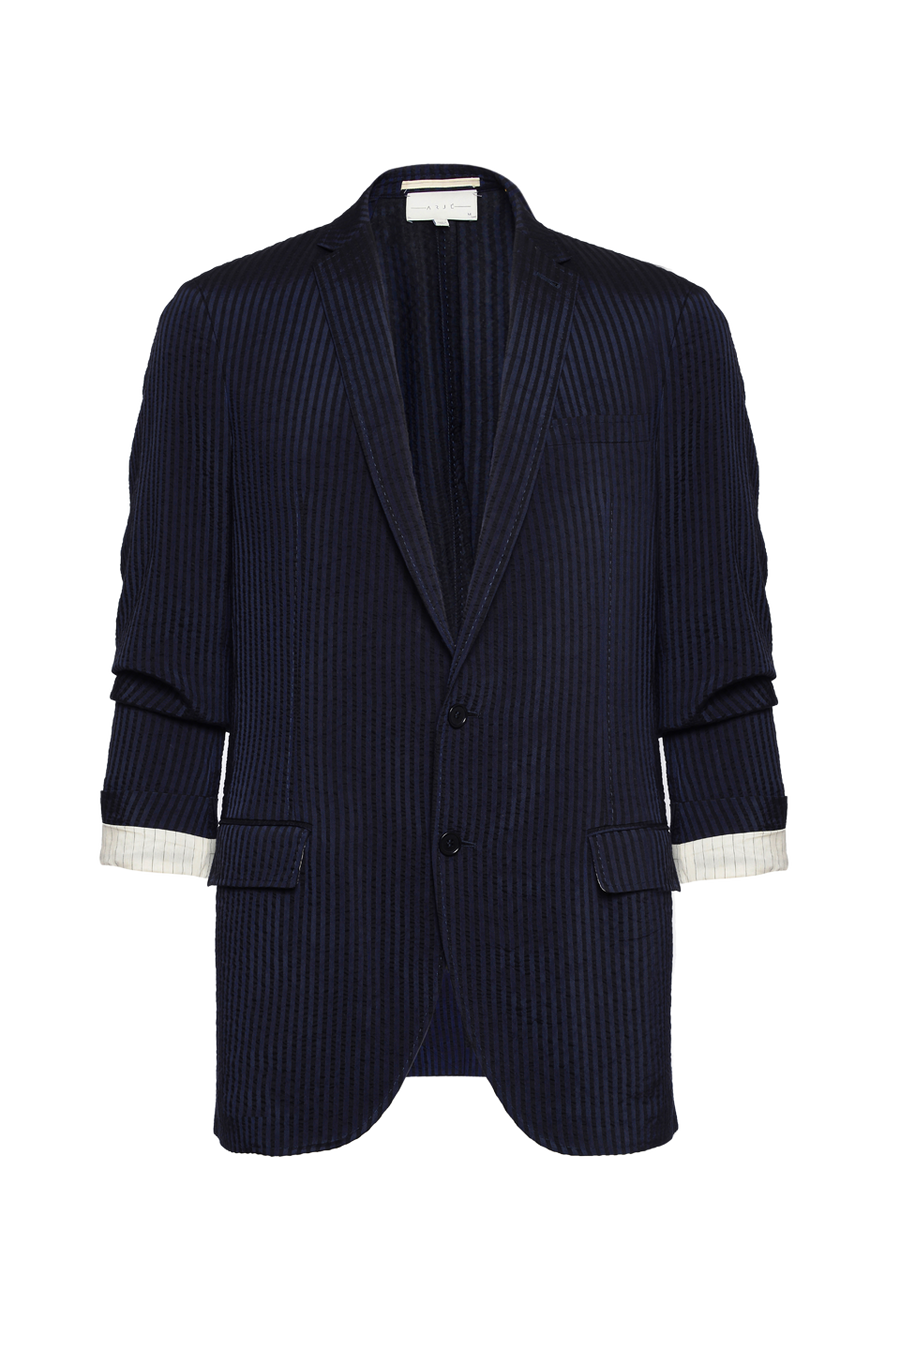 THE ELI CRUSHED STRIPE BLAZER